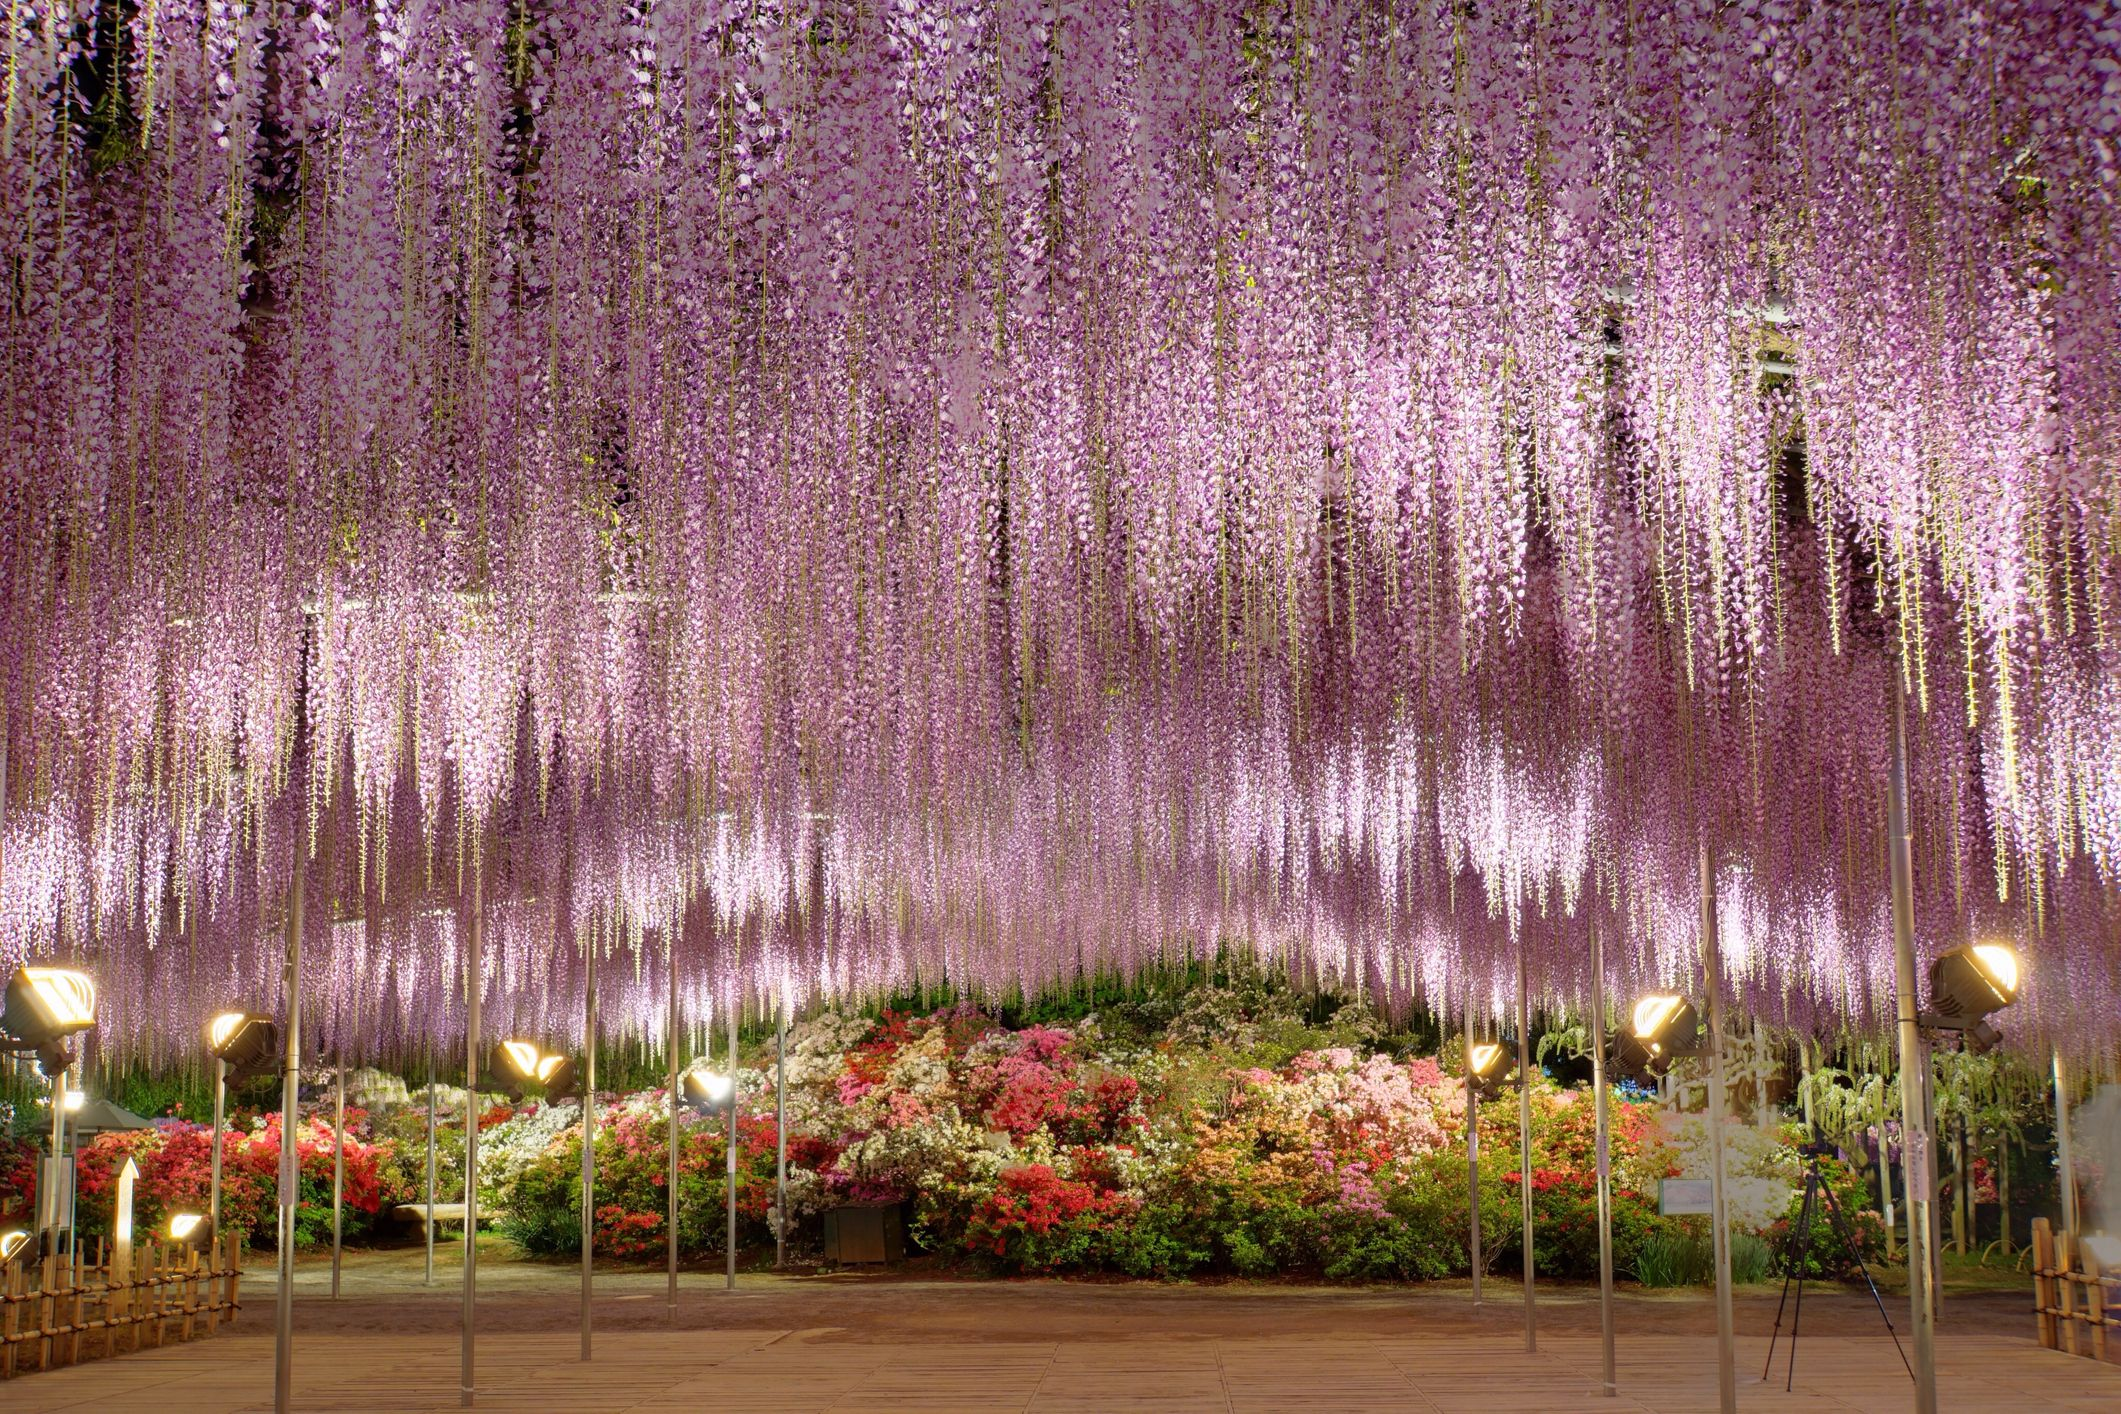 Japan's Wisteria Gardens Are Even More Beautiful Than Its Cherry Blossom Trees